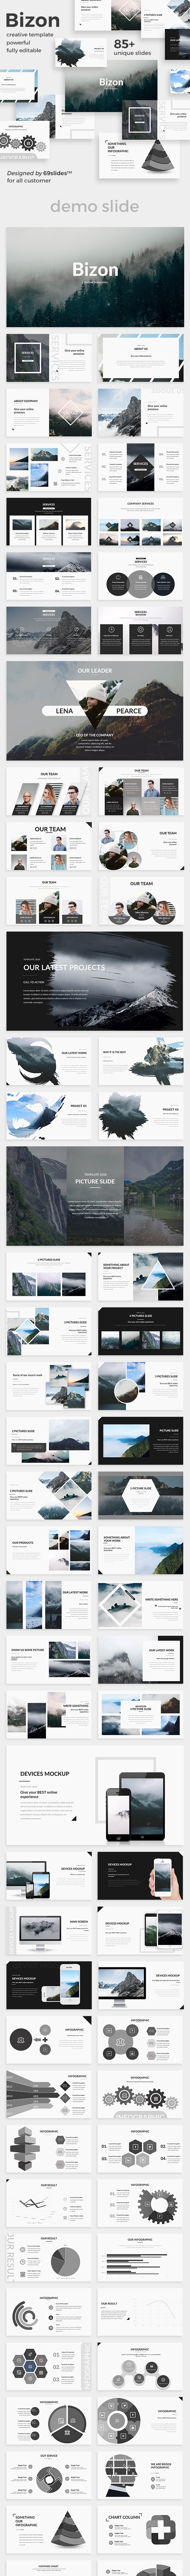 Bizon Creative Powerpoint Template - Creative PowerPoint Templates